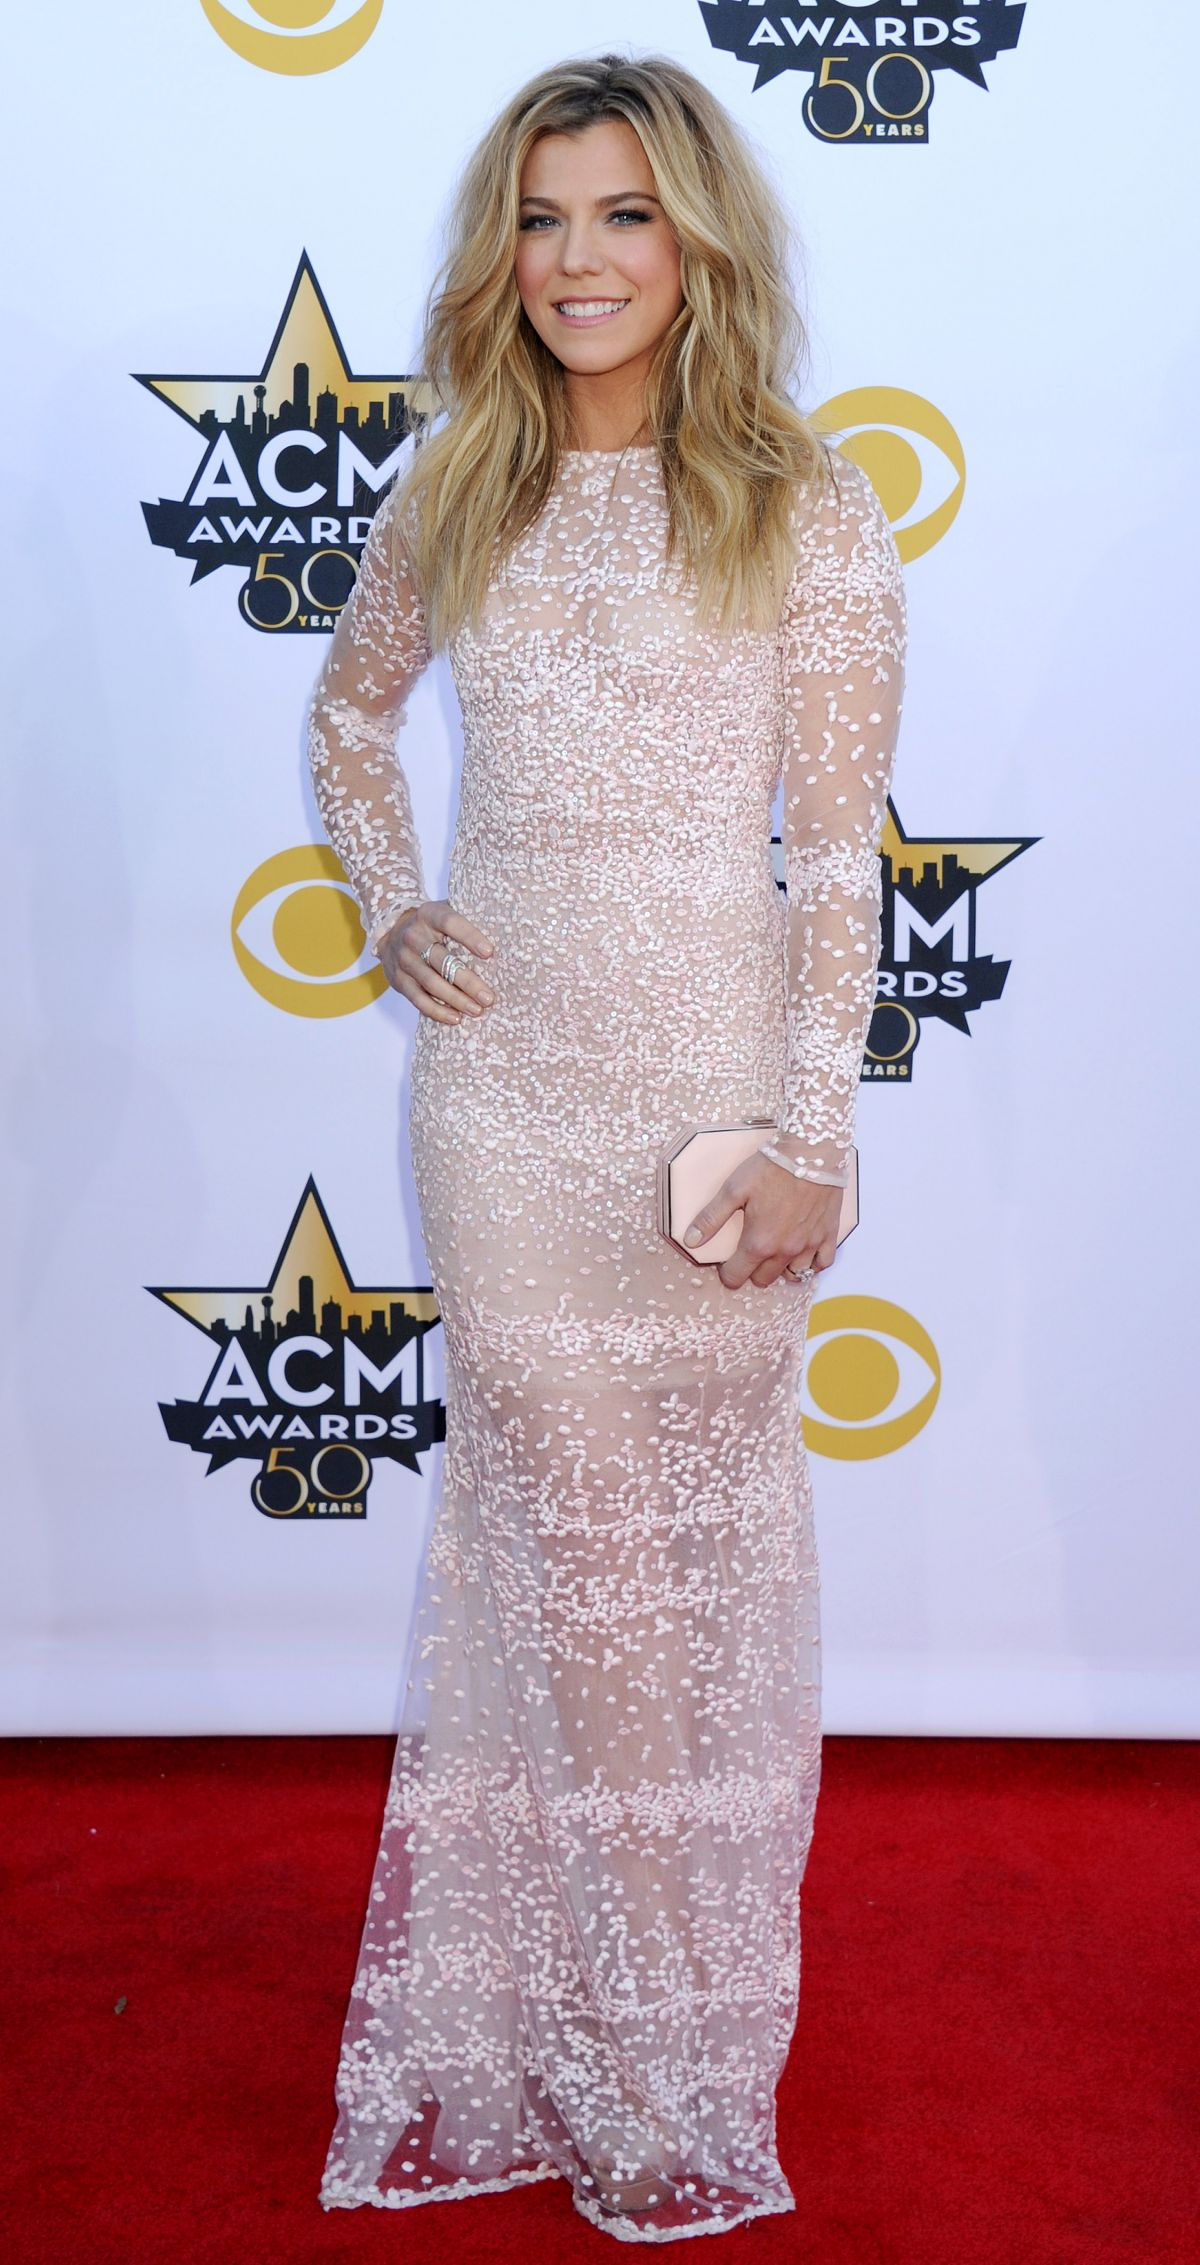 KIMBERLY PERRY at Academy of Country Music Awards 2015 in Arlington